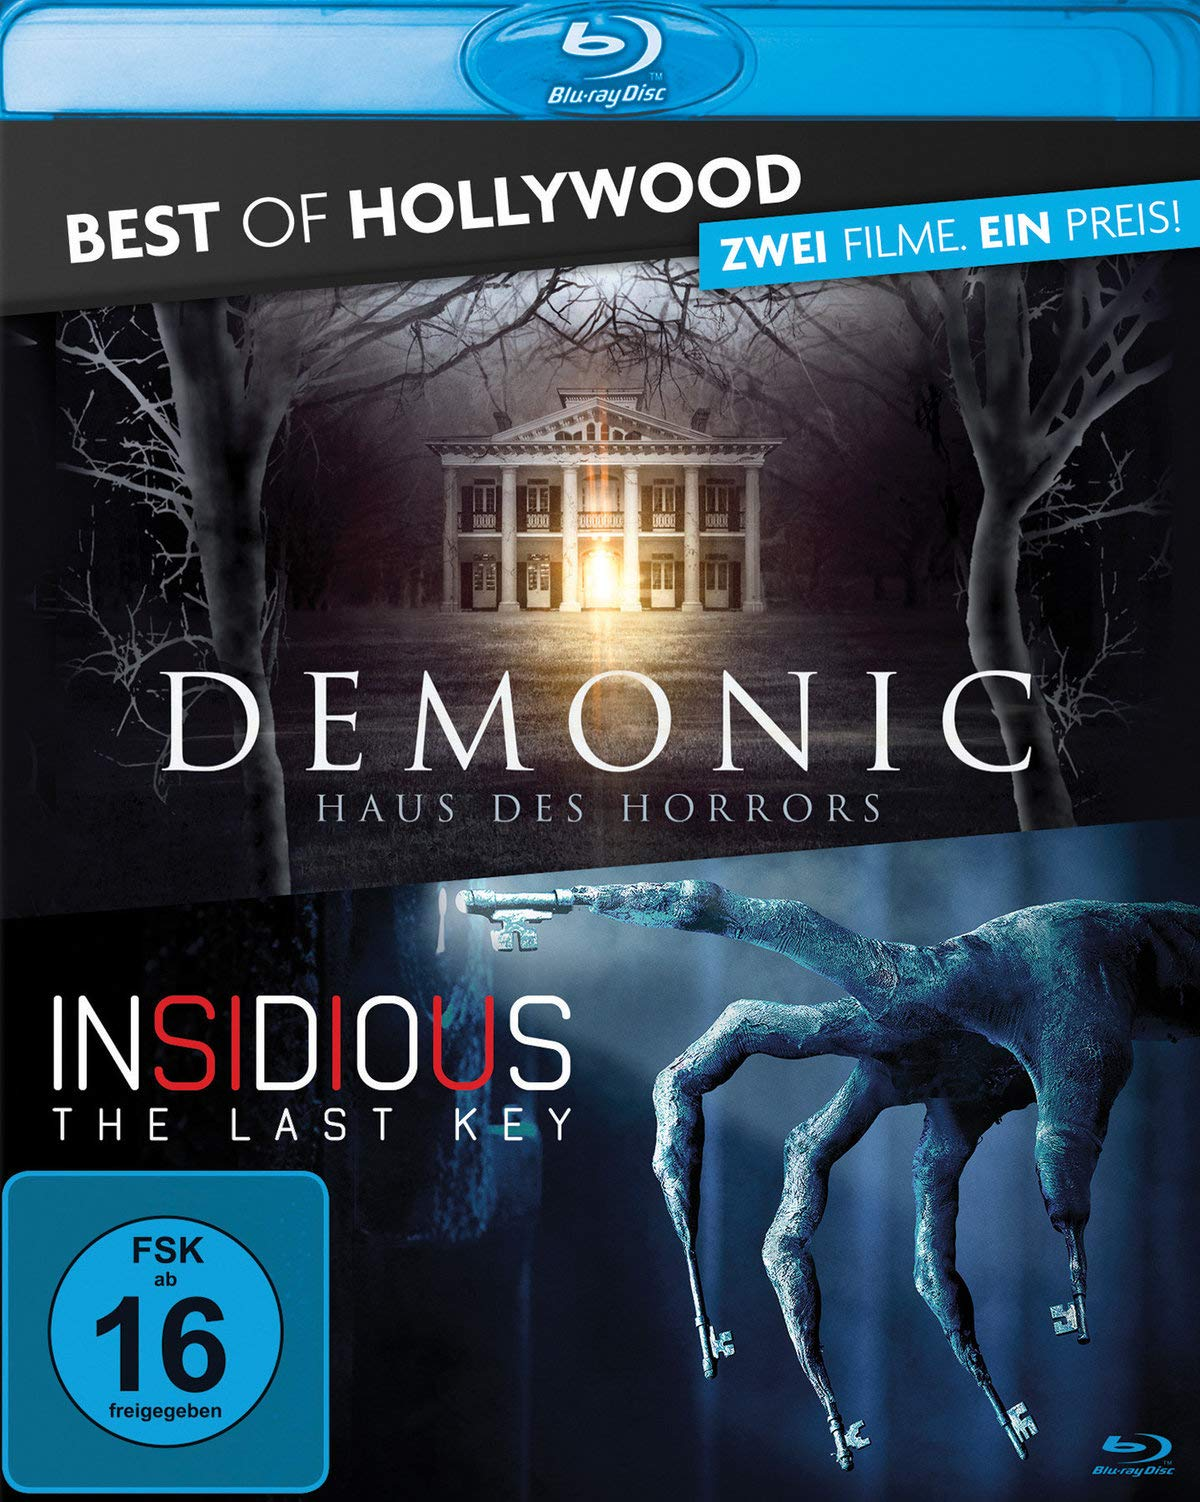 Insidious - The Last Key & Demonic - Haus des Horrors: Best of Hollywood - 2 Movie Collectors Pack: Amazon.es: Bella, Leigh Whannell Max La, Canon, Will, Simon, Doug, Shaye, Lin, Botet,